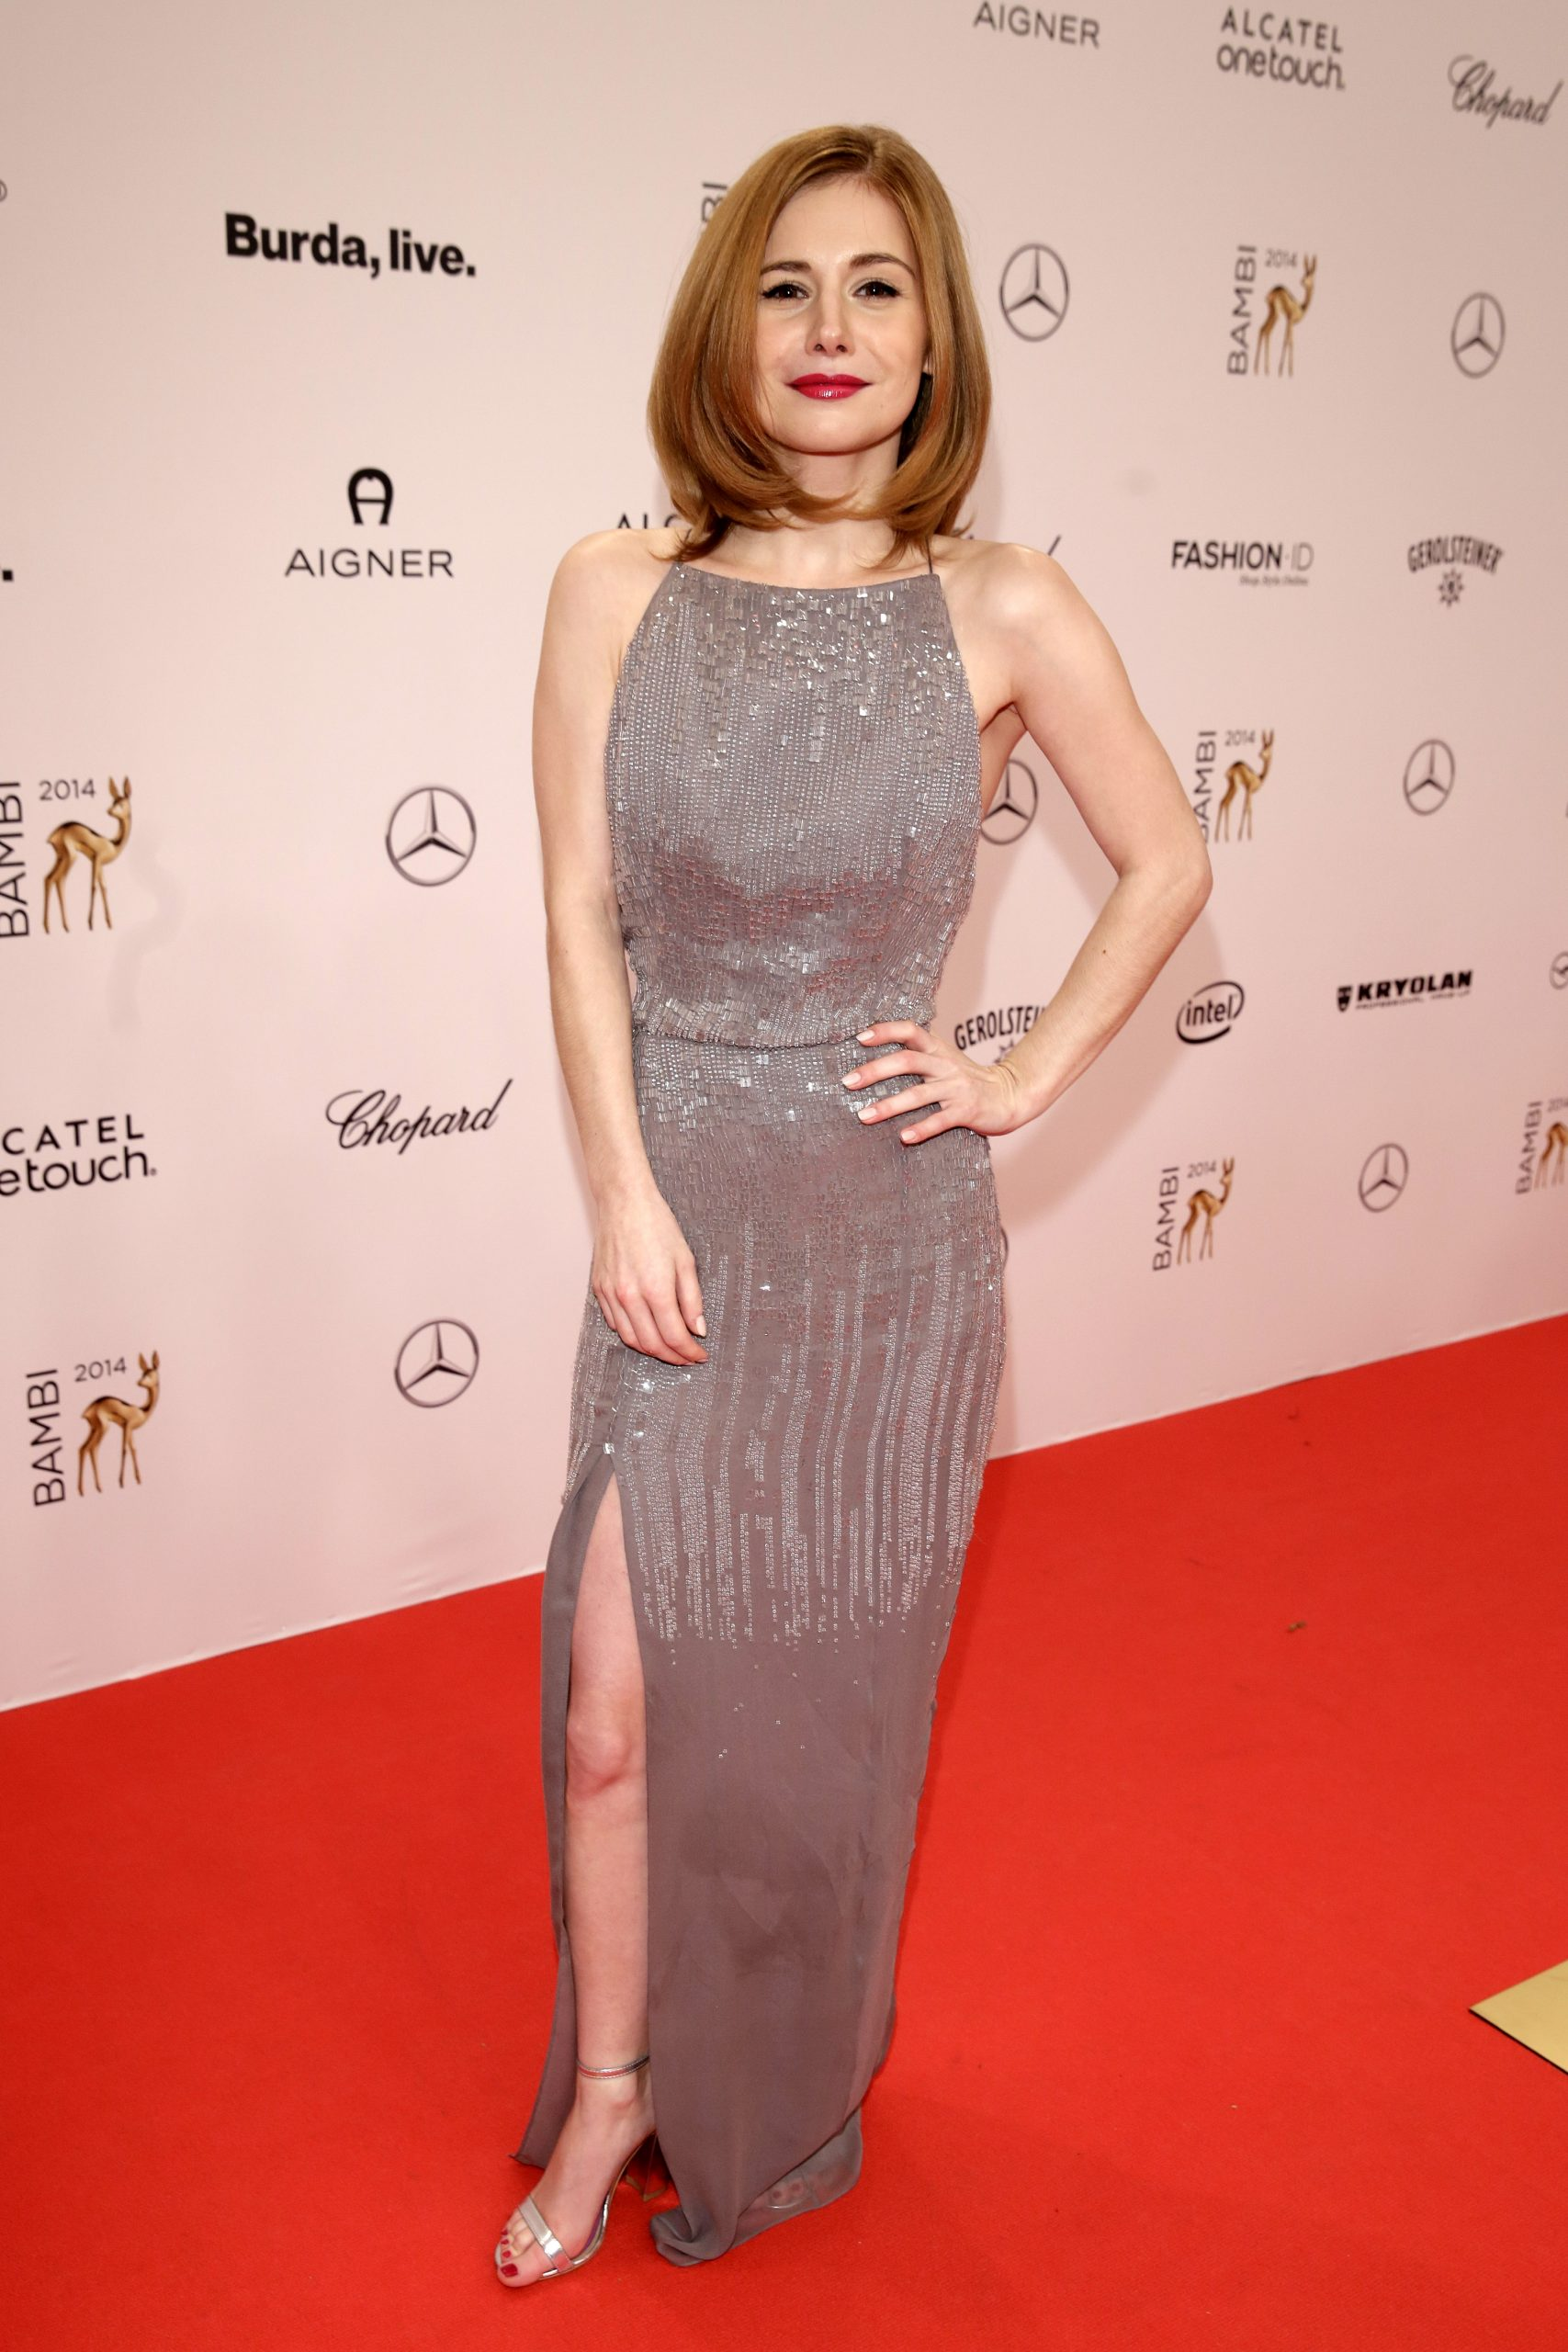 Josefine-Preuss BAMBI 2014 - Roter Teppich in Berlin am 13.11.2014